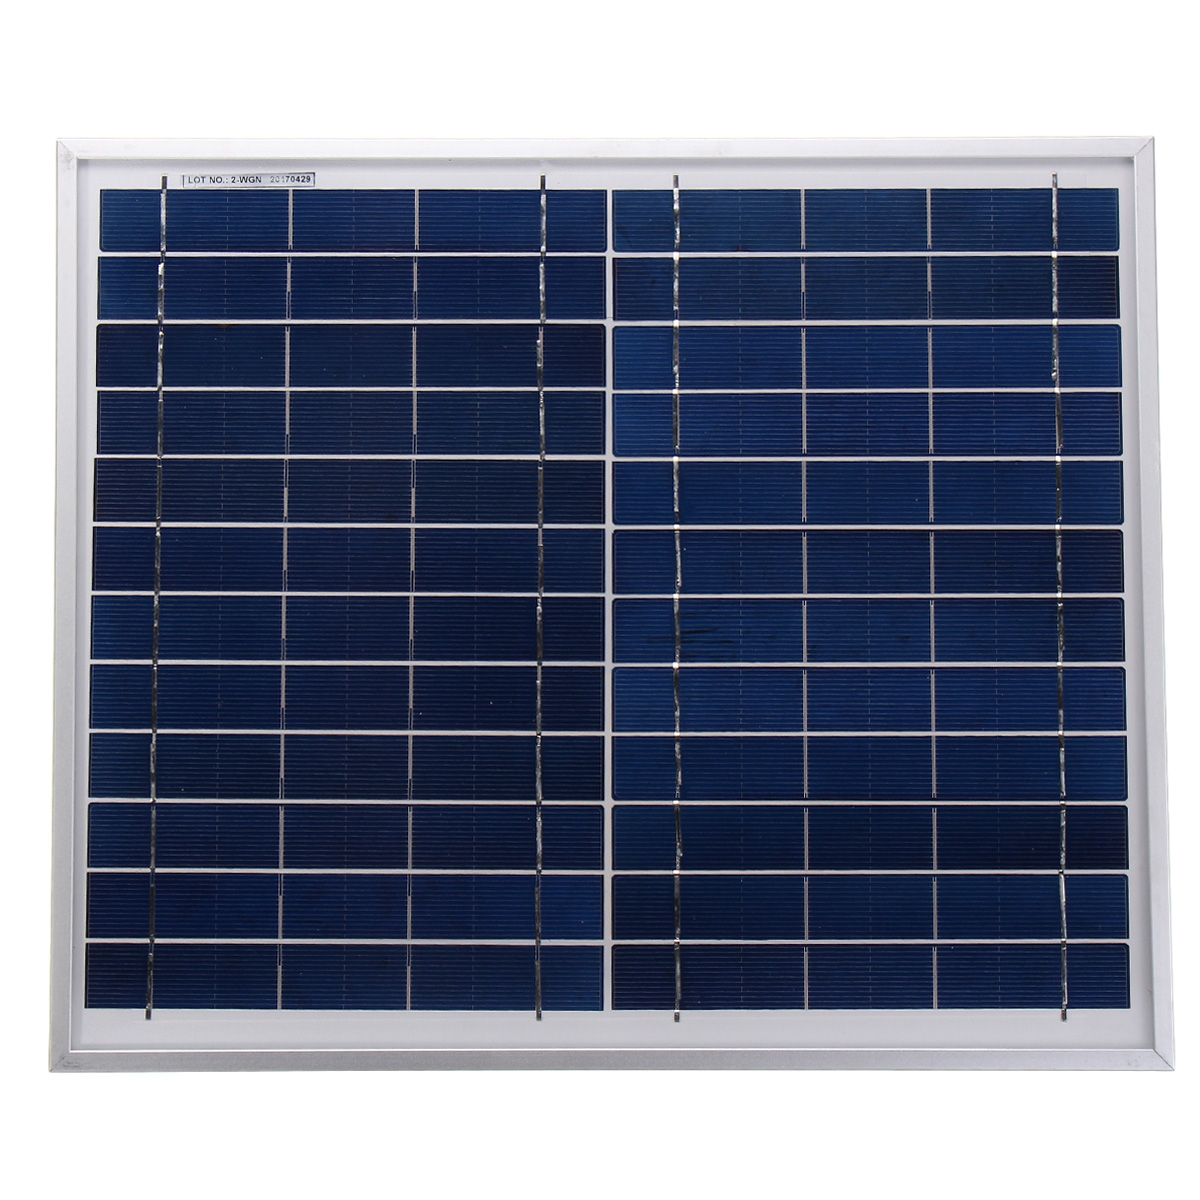 2V 12W Durdable Waterproof Solar Panel Charger For Emergency Light Camping